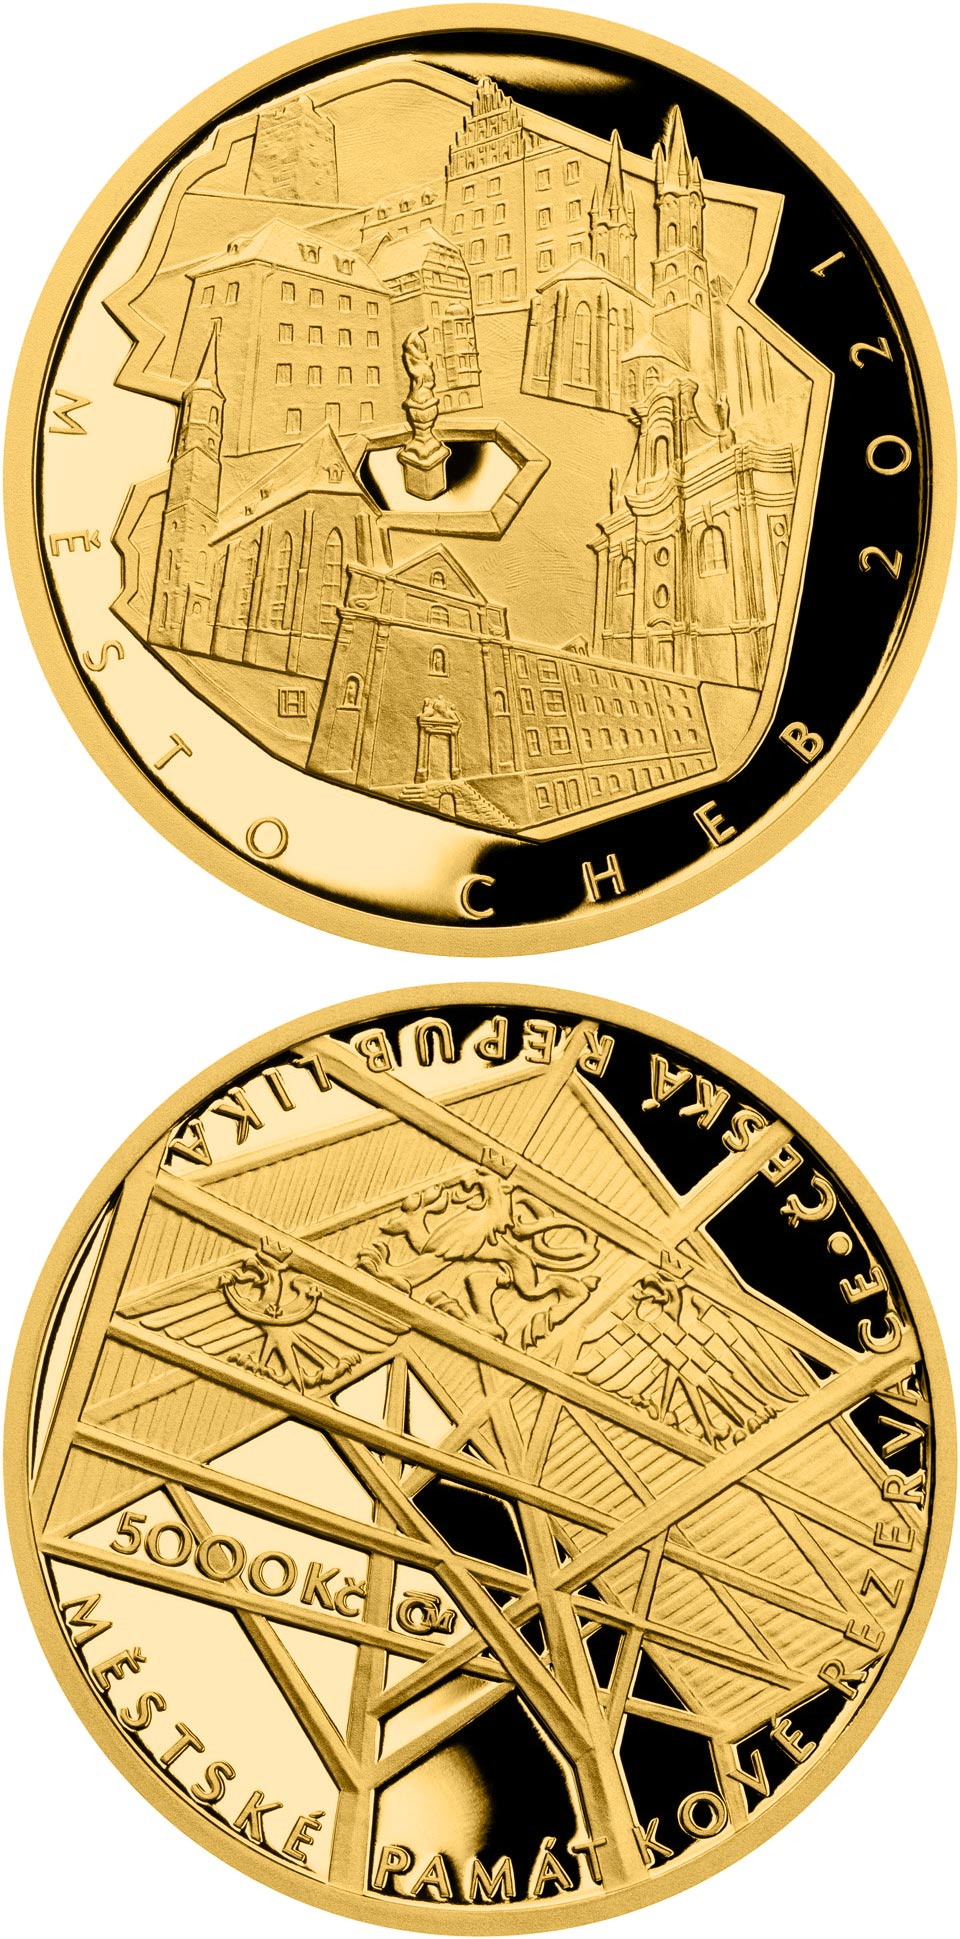 Image of 5000 koruna coin - Cheb | Czech Republic 2021.  The Gold coin is of Proof, BU quality.